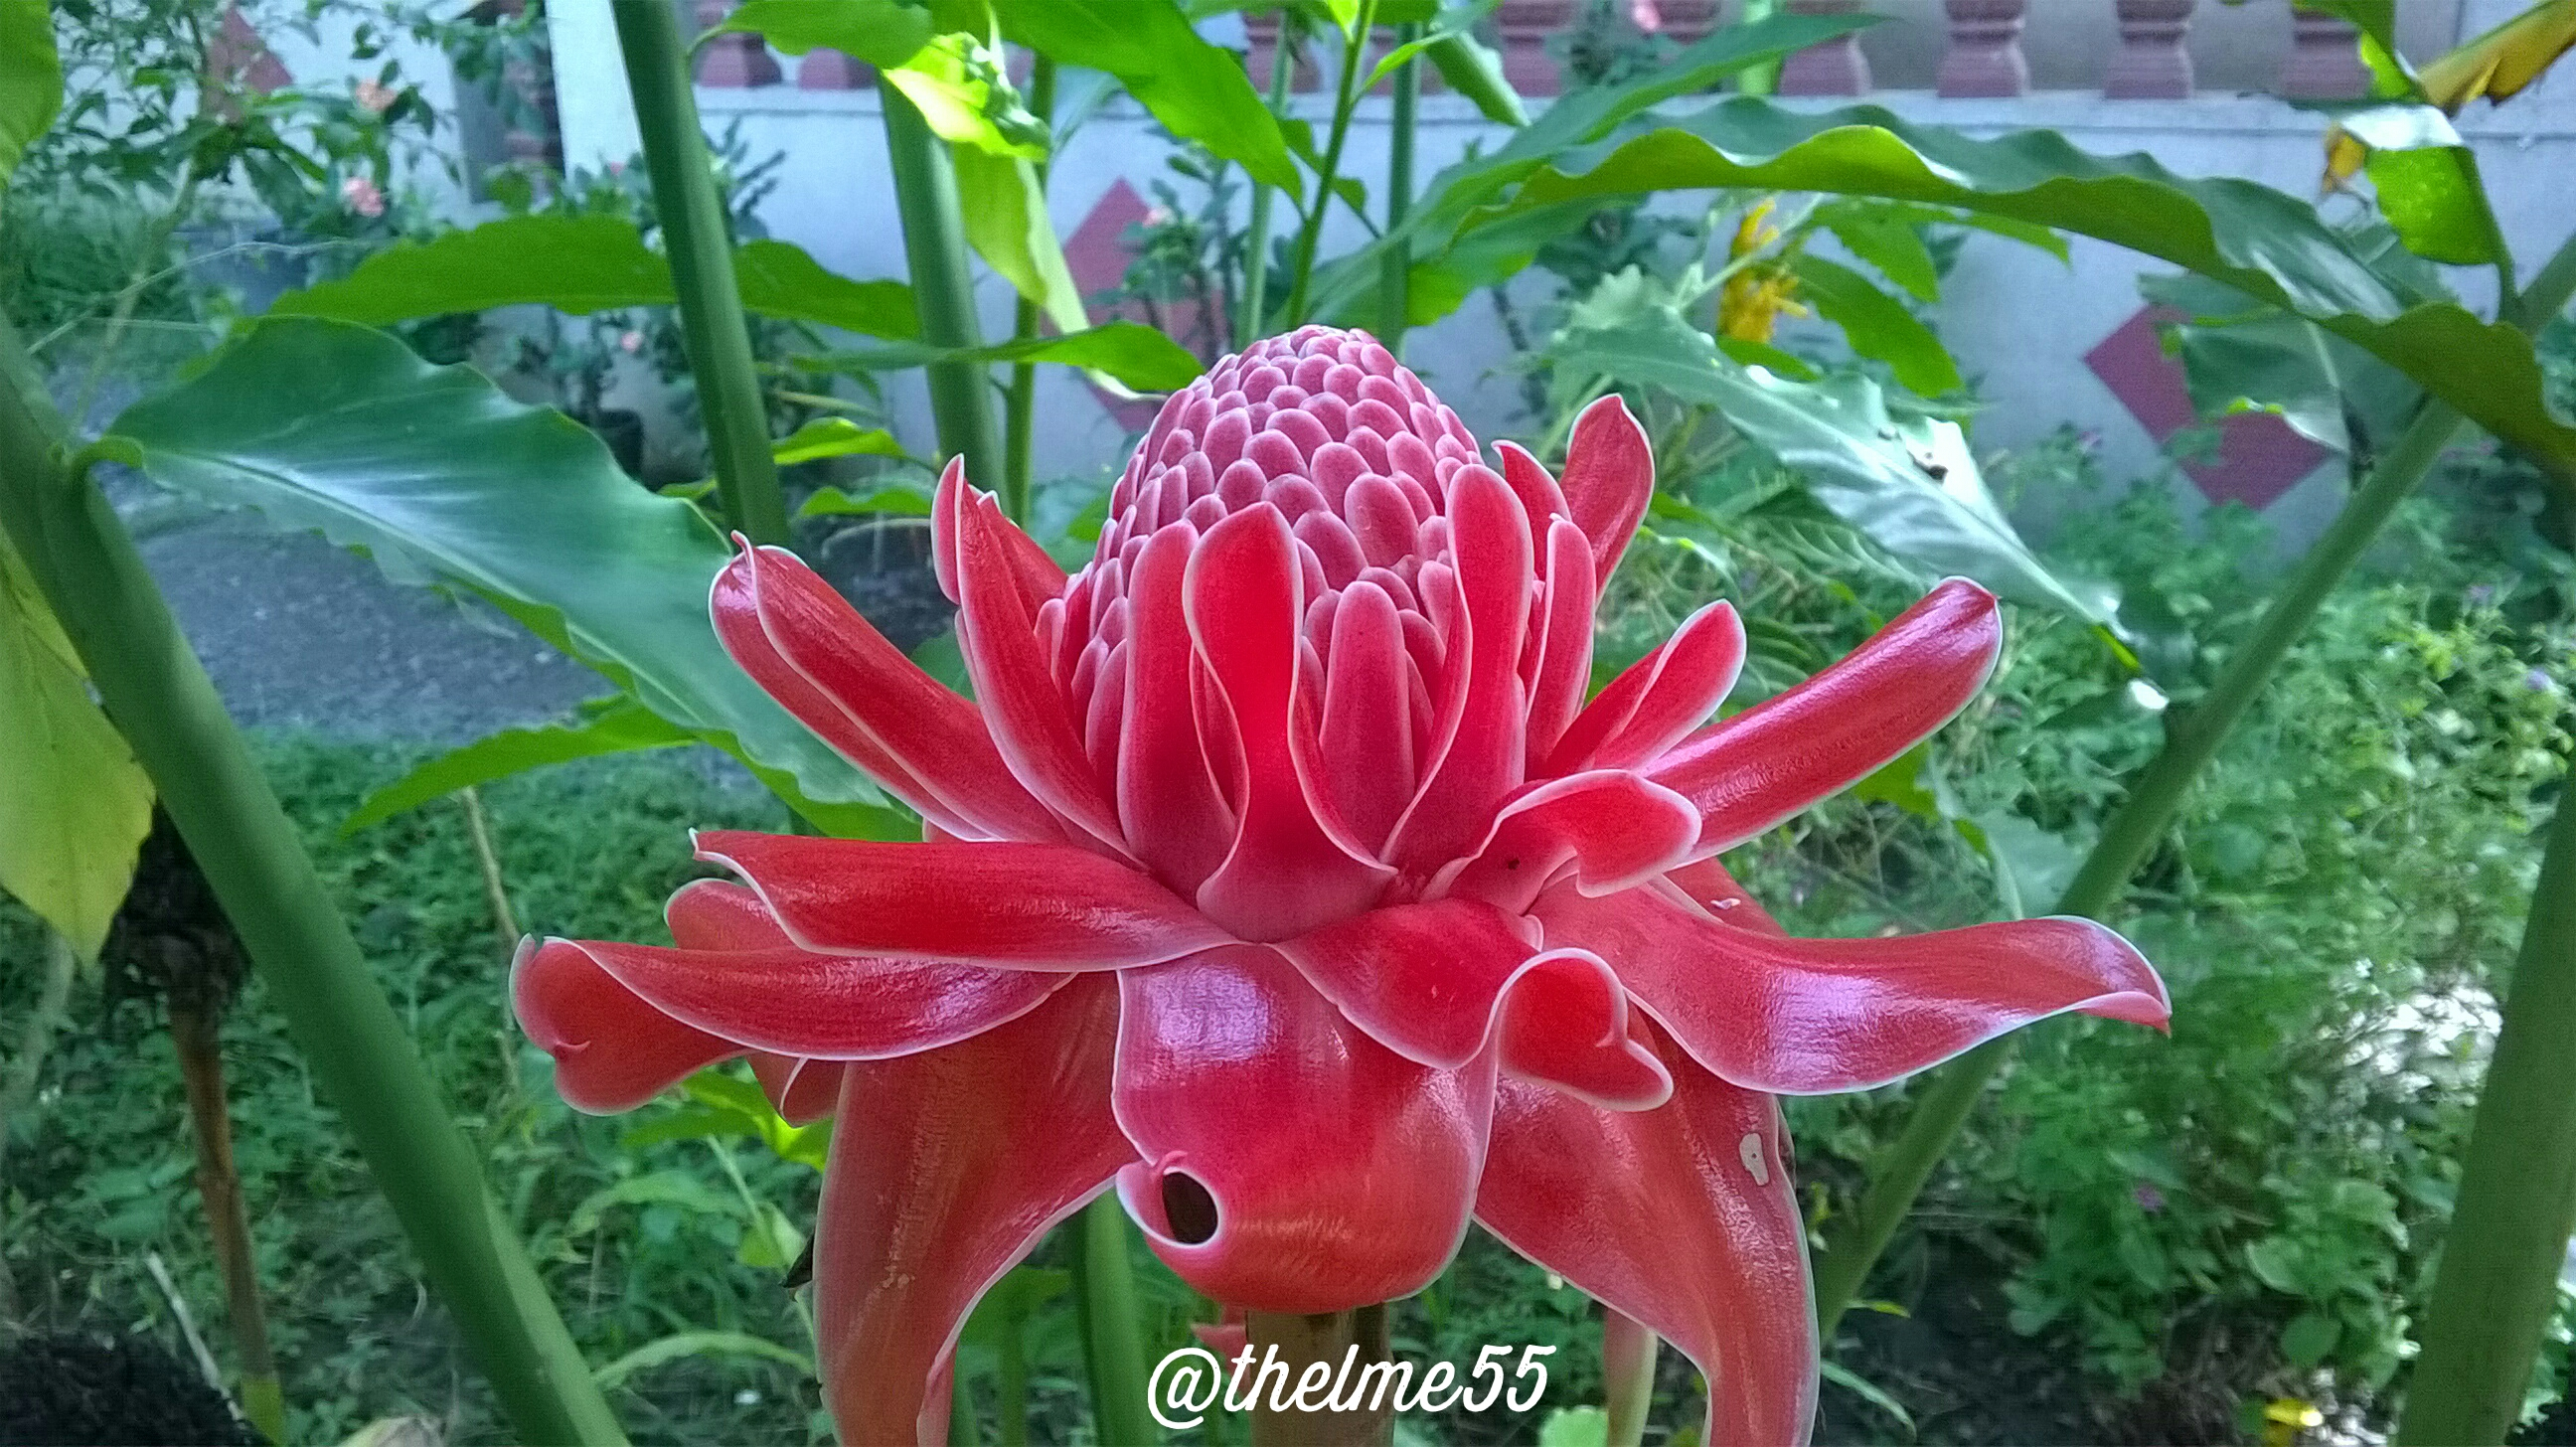 Torch ginger for my late mother